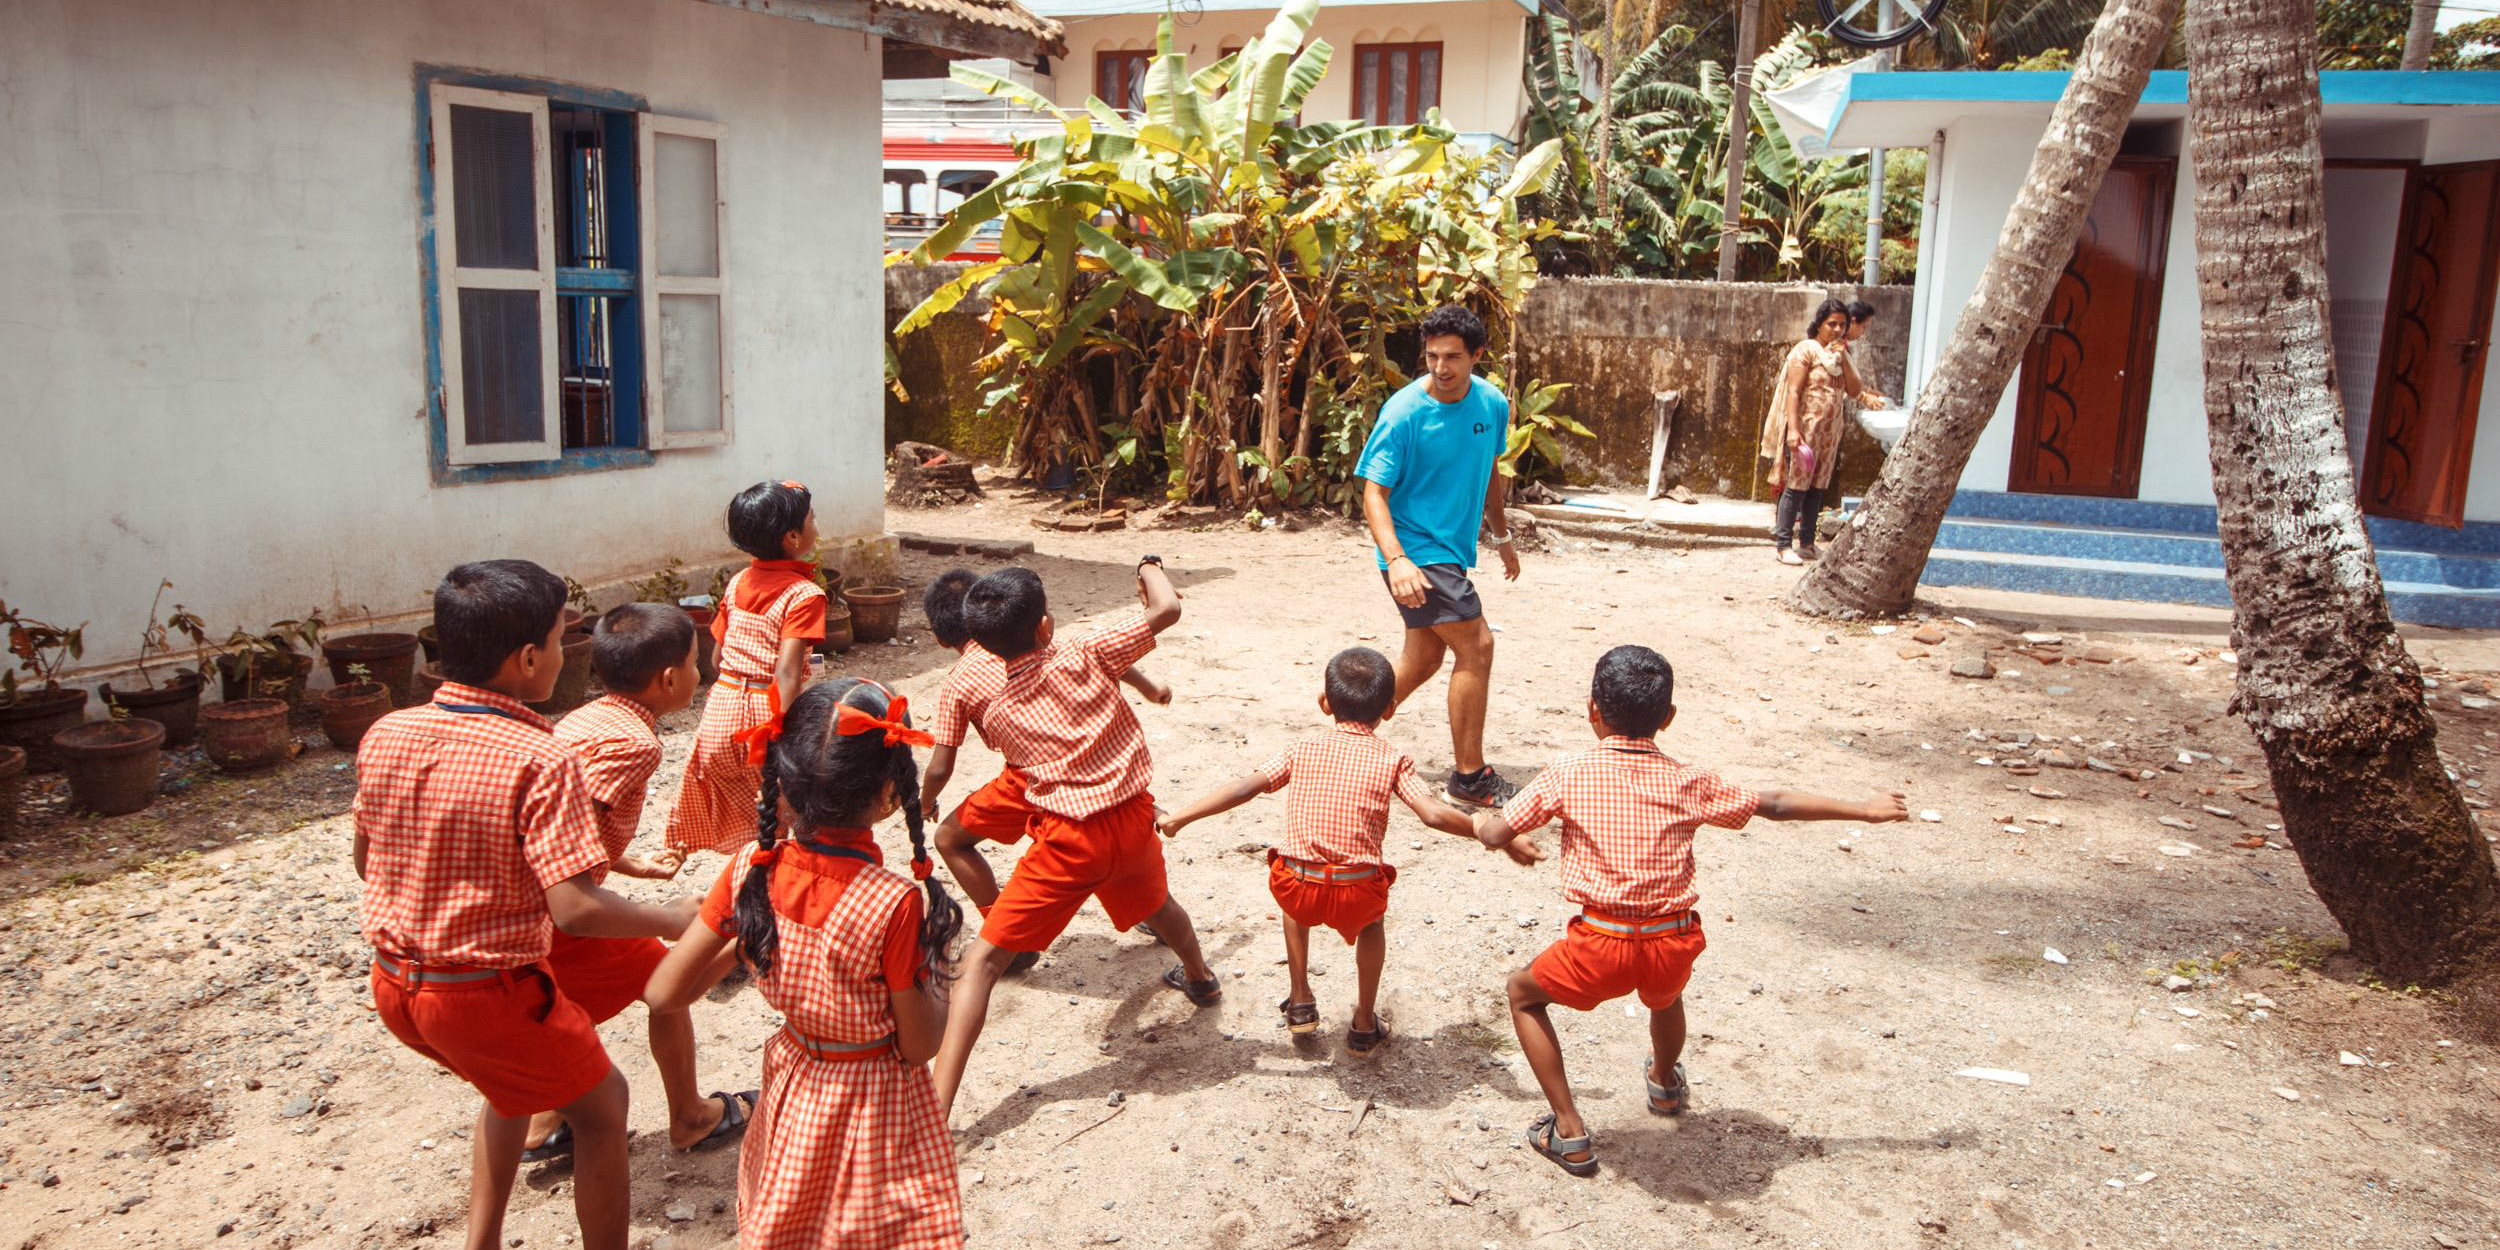 A GVI participant leads a class in sports. This international community development program focuses on health and wellness in India.